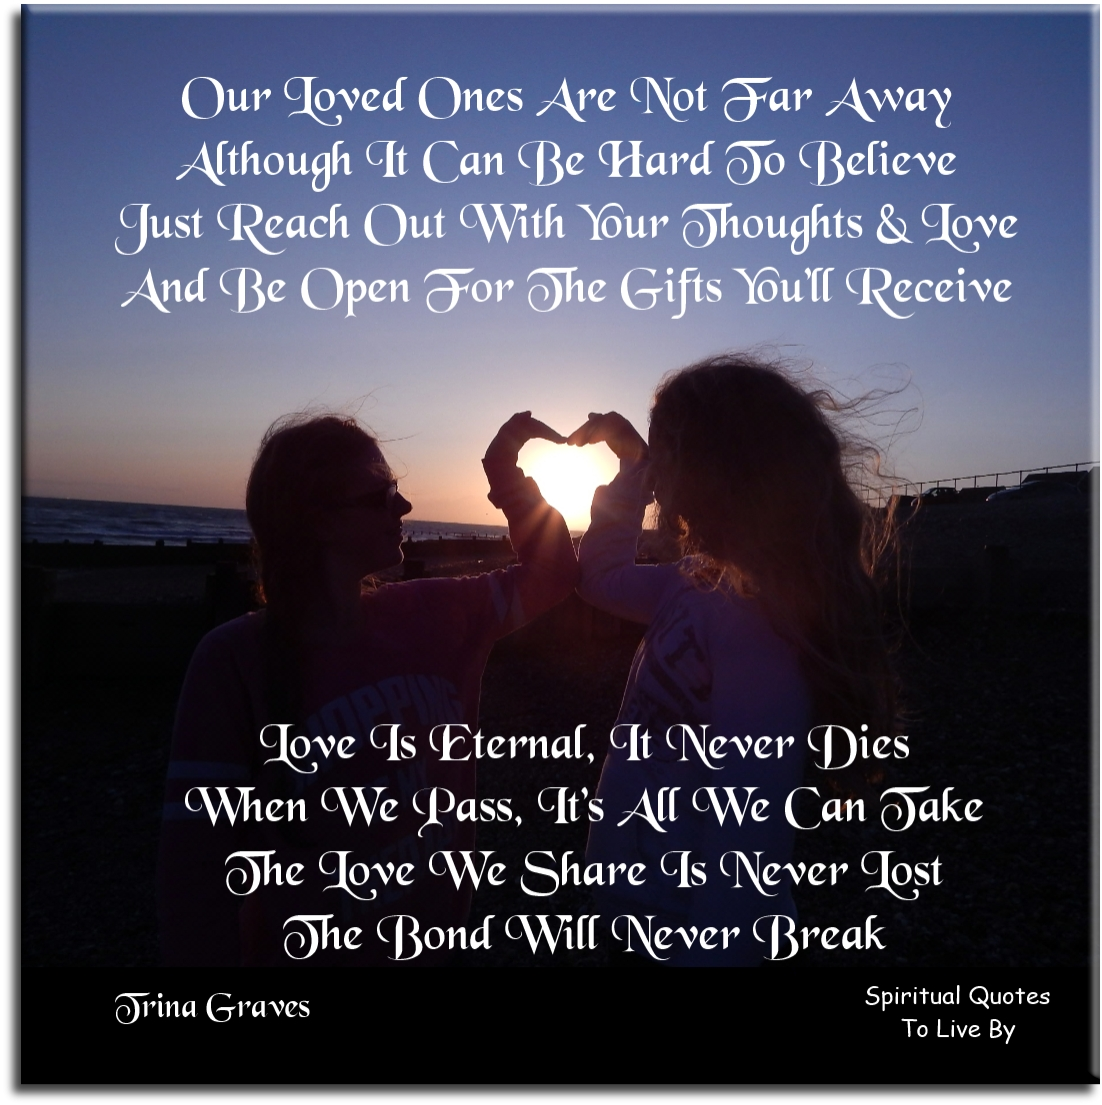 Short Quotes About Death Of A Loved One Sympathy Verses Poems And Words Of Compassion